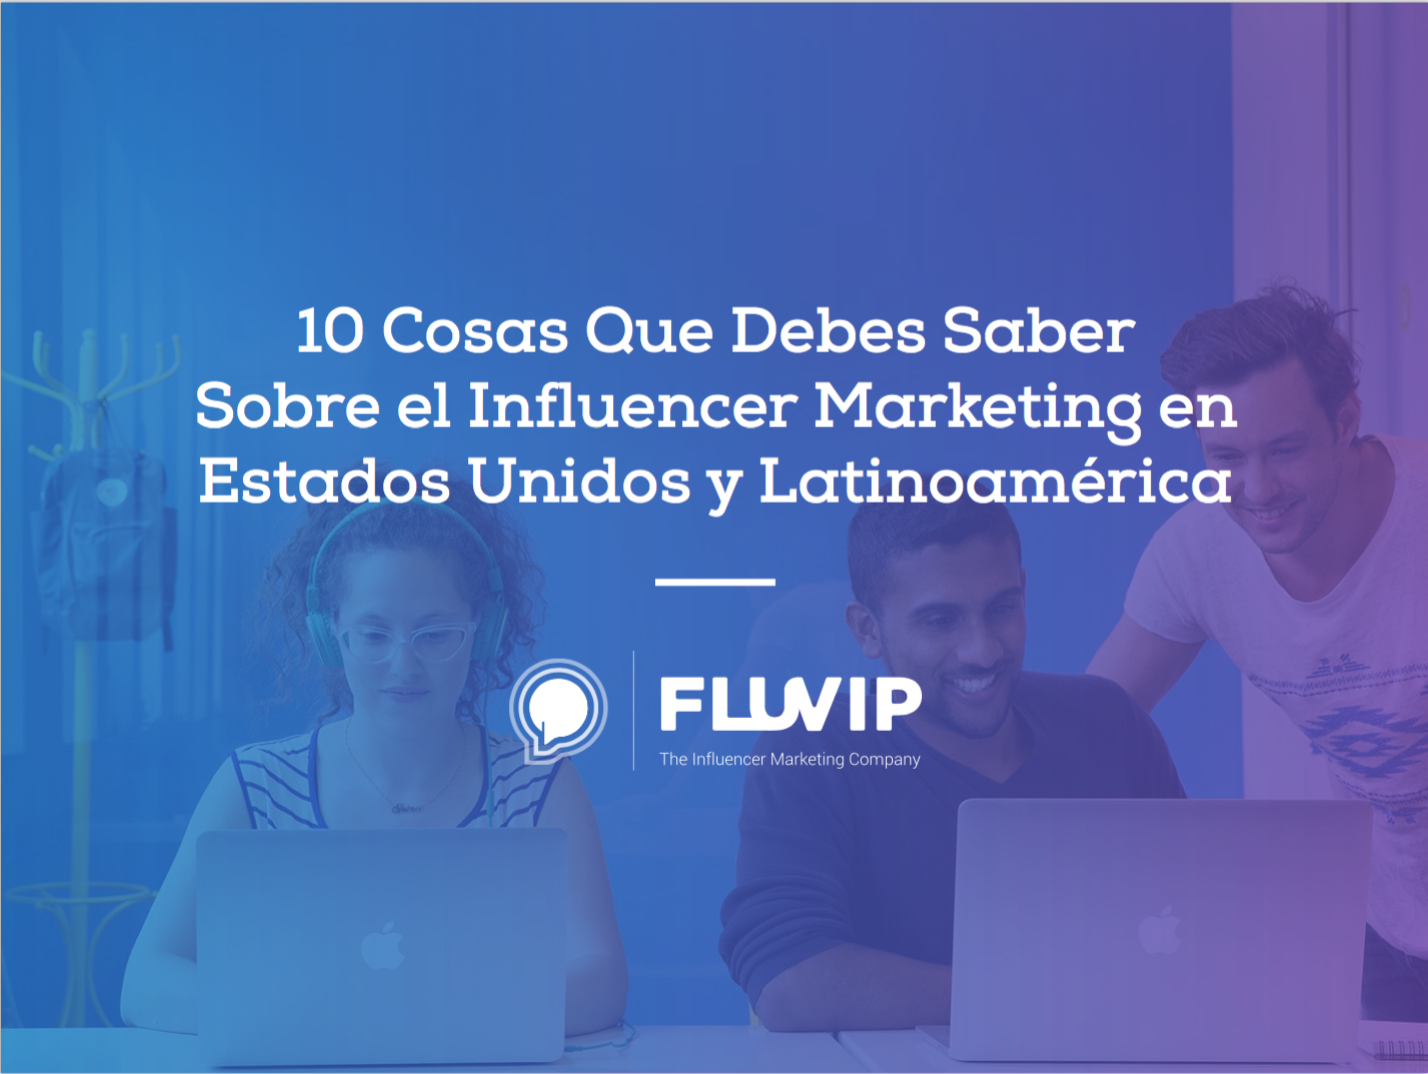 10 Cosas que debes saber sobre el Influencer Marketing